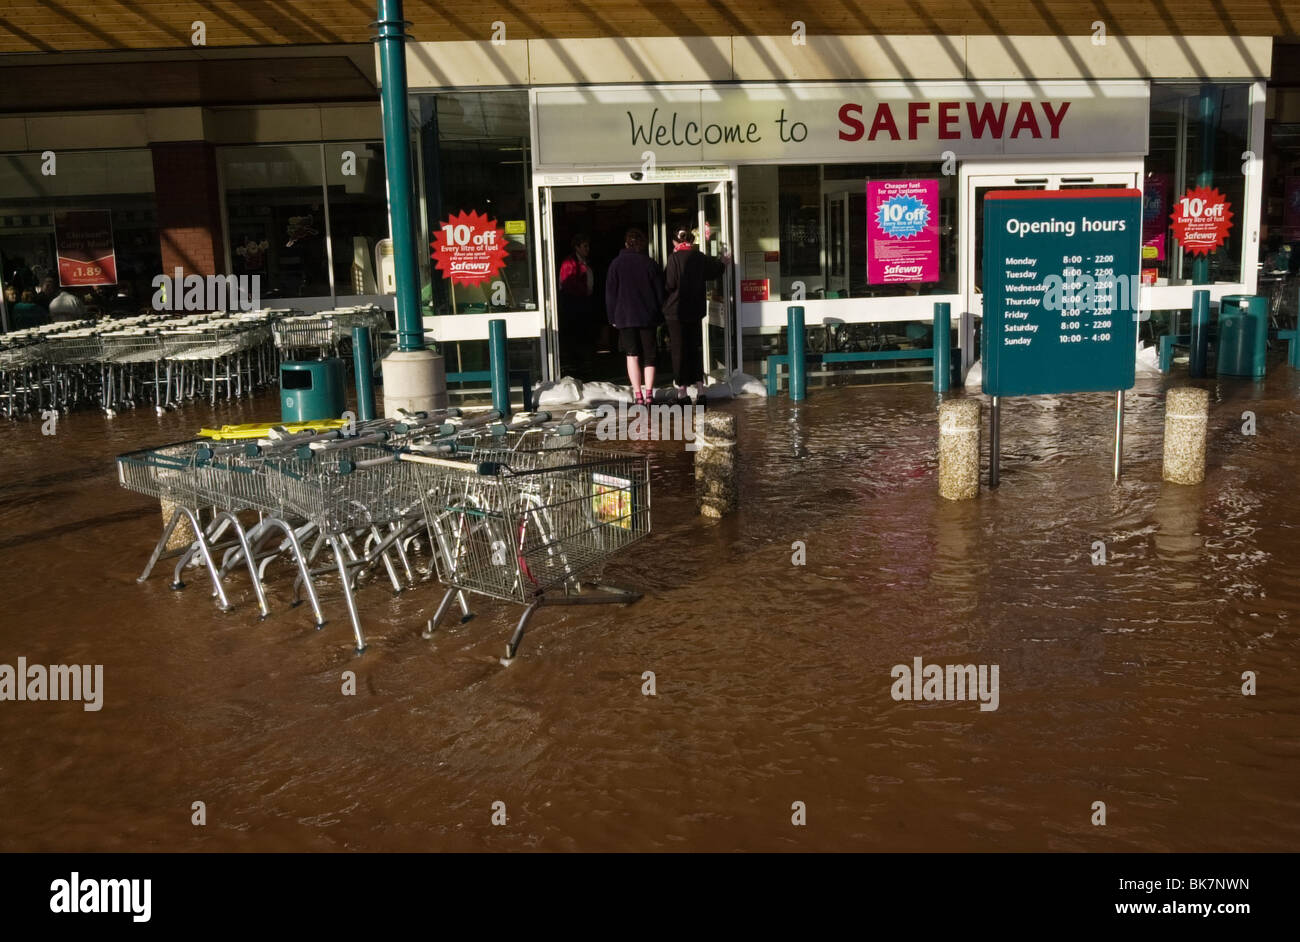 Safeway Store Flooded After Heavy Rain At Ross On Wye Herefordshire England  UK   Stock Image